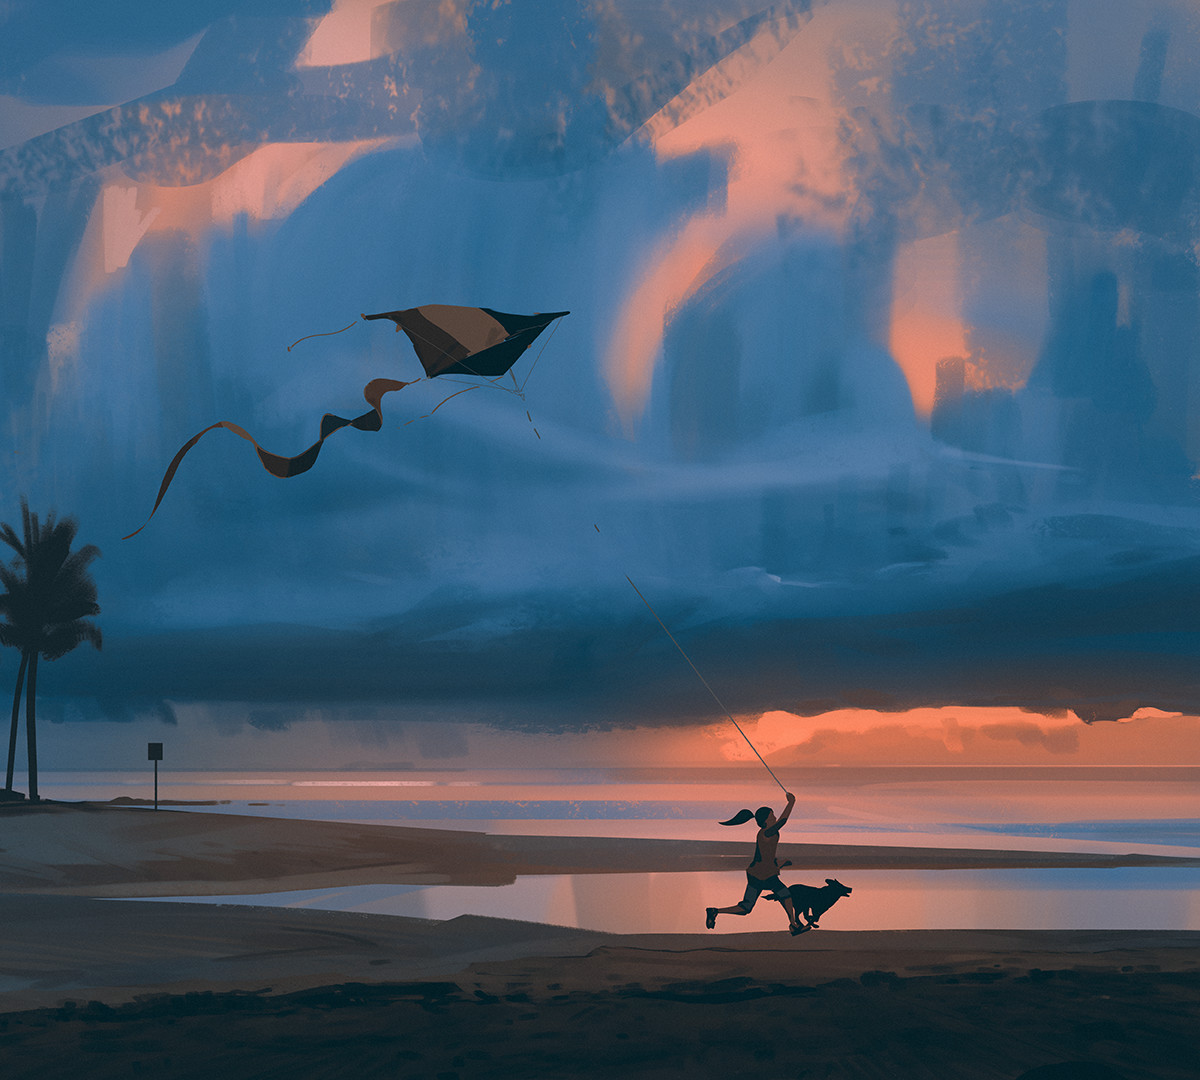 Atey ghailan flying a kite by snatti89 dc6chog